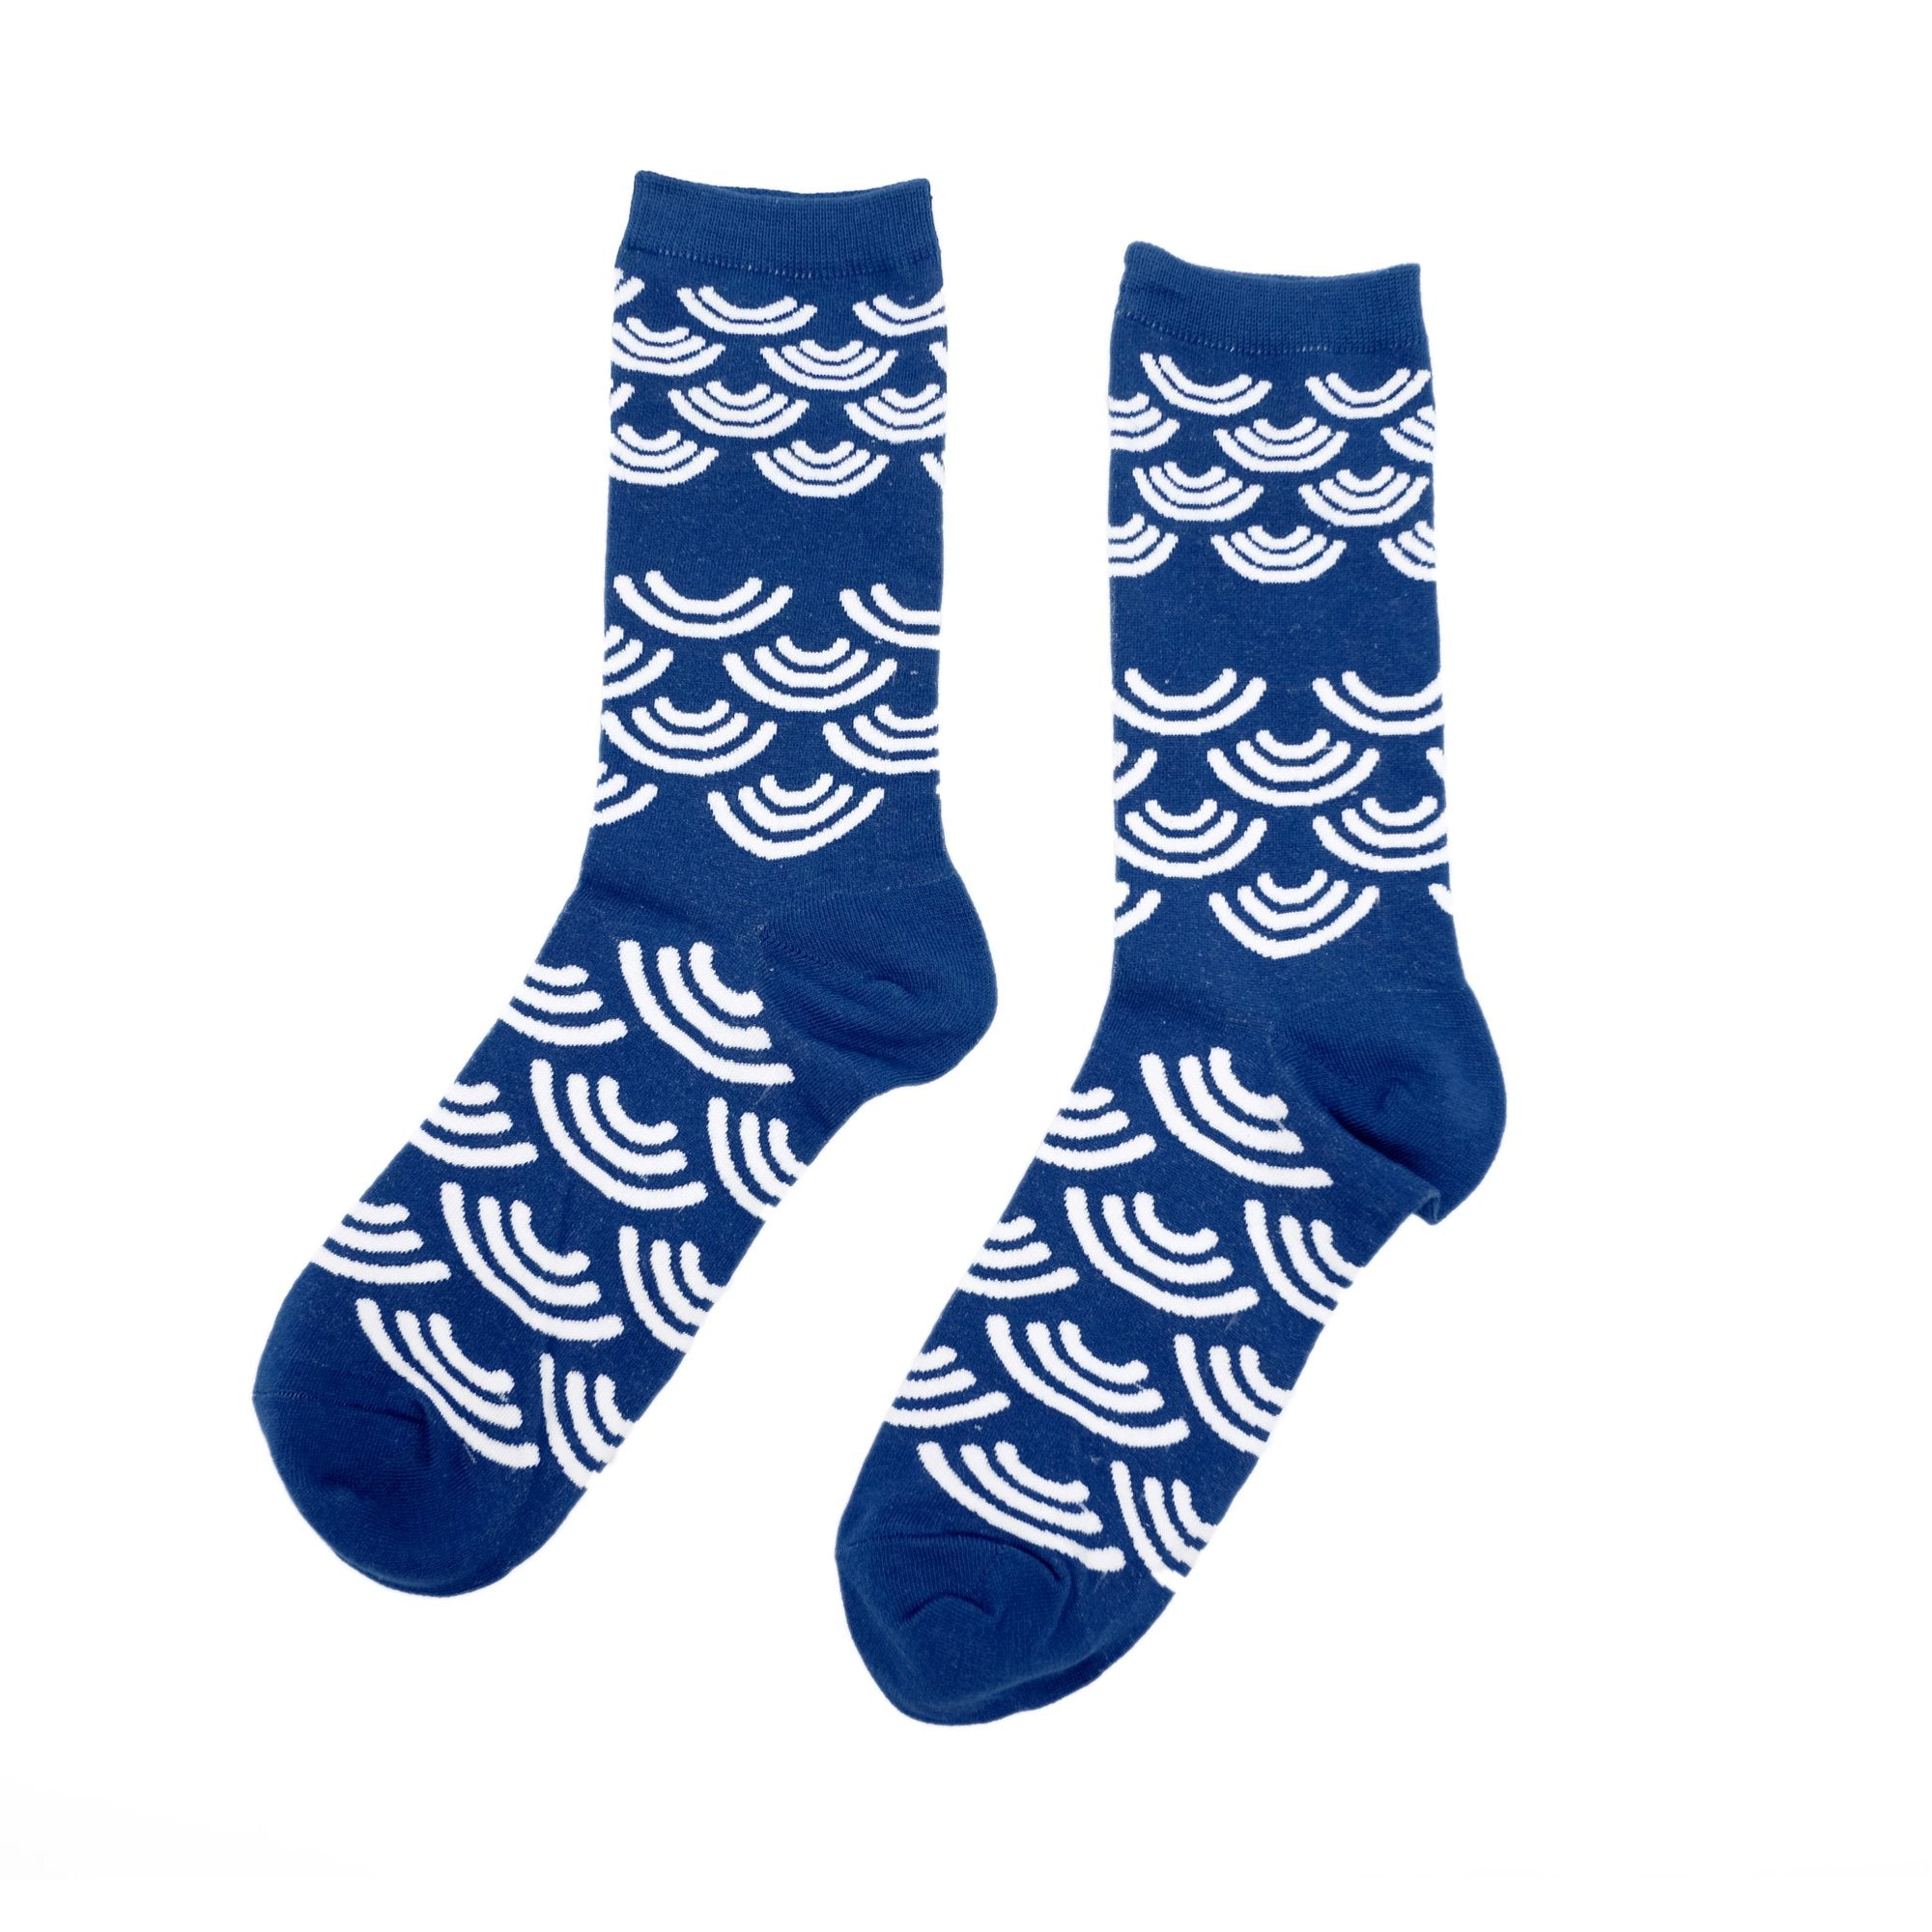 Japanese Sea Socks